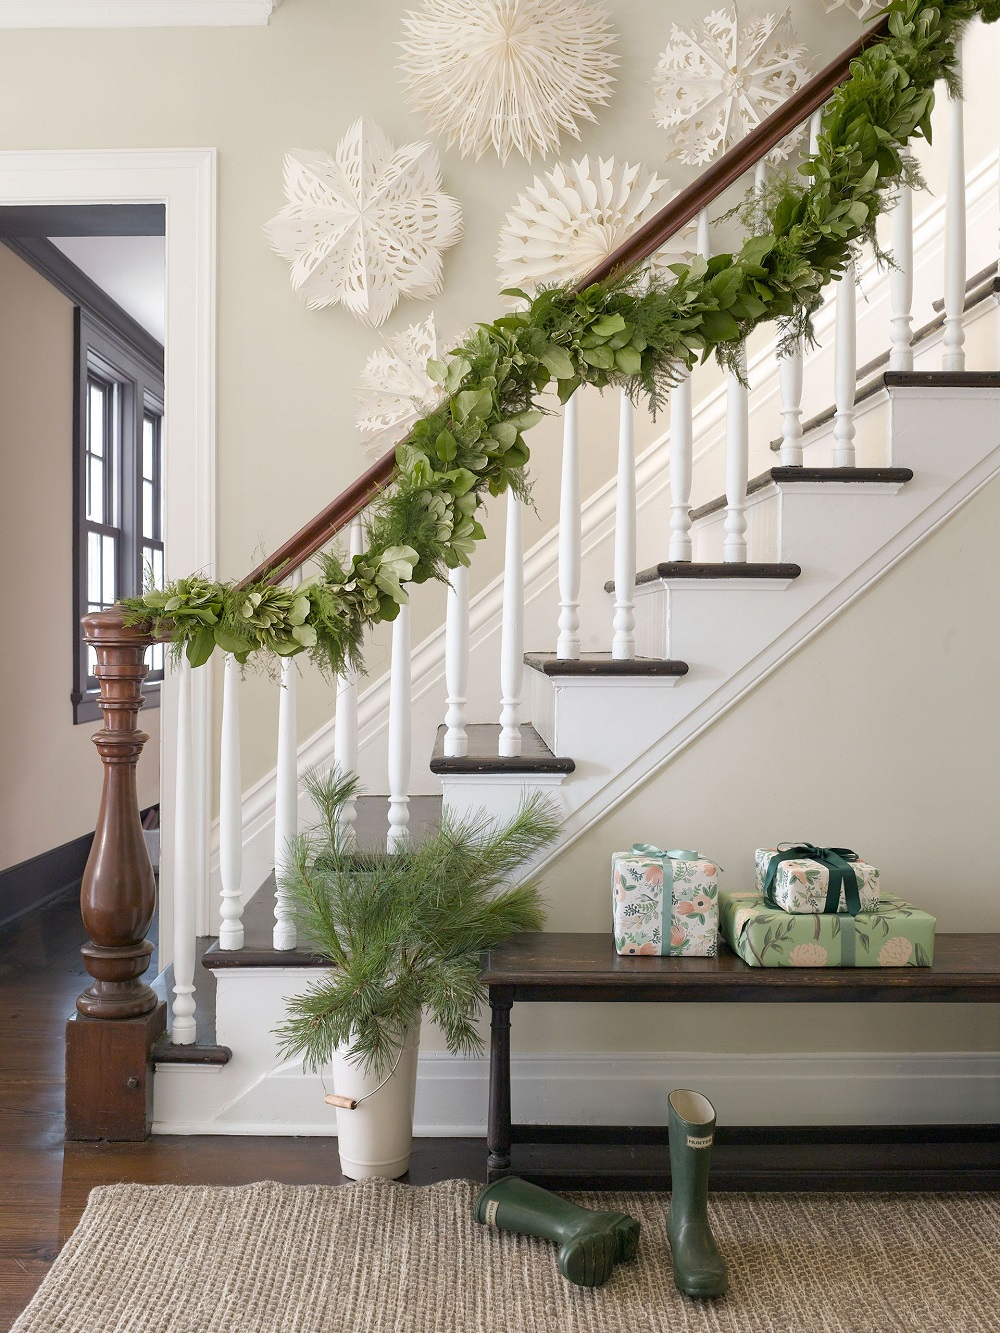 t3-133 Great ideas for decorating Christmas stairs that you should definitely try